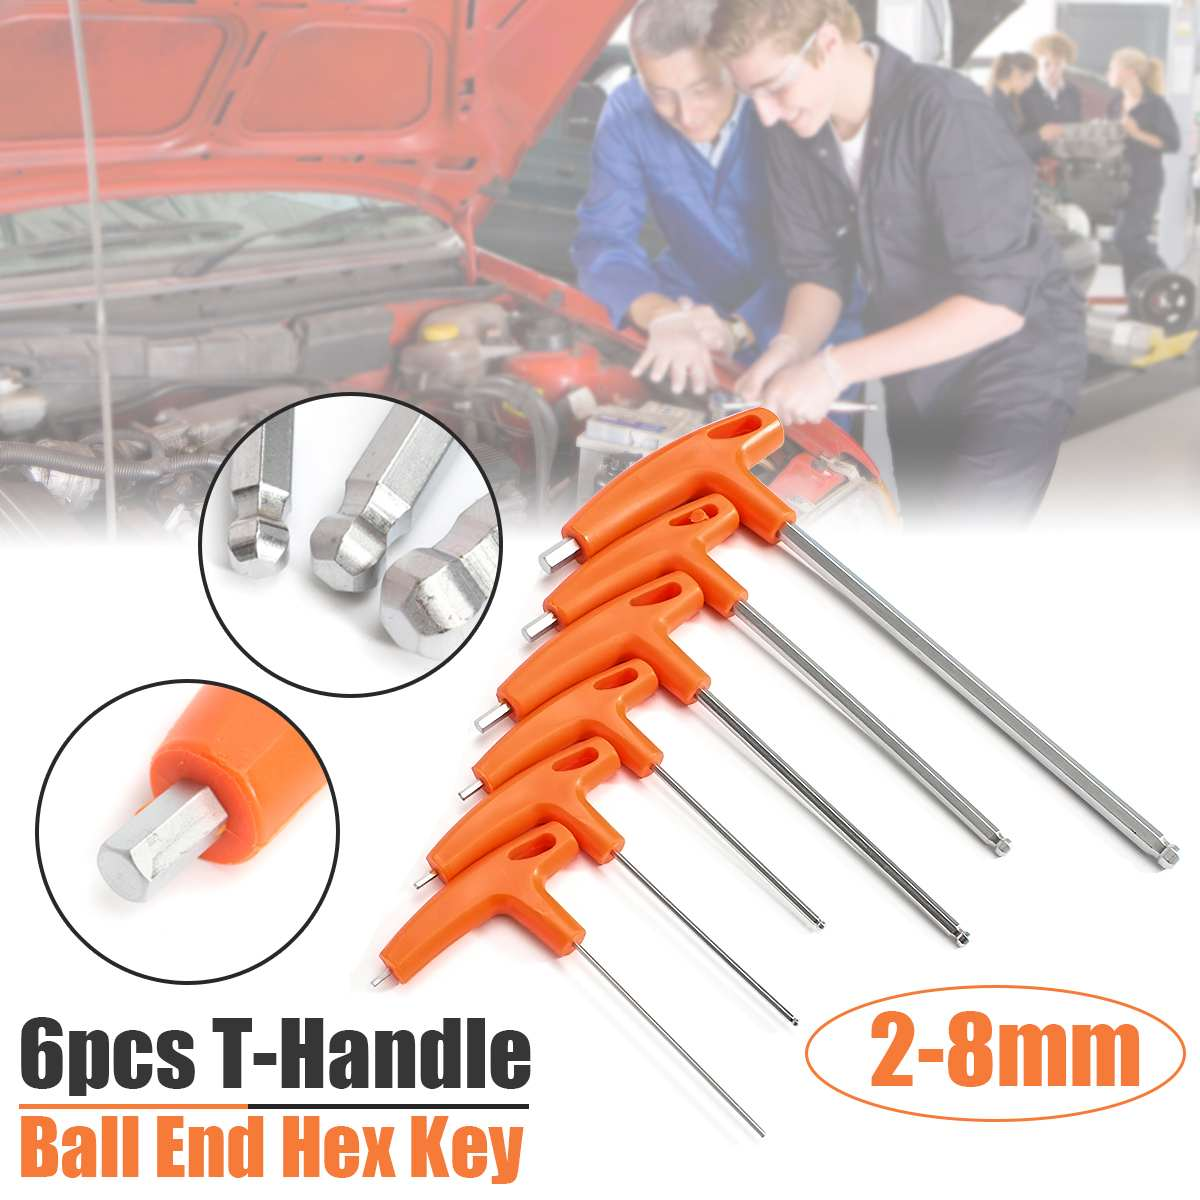 Doersupp 6Pcs /Set H2 - H8mm T Handle Ball Ended Hex Key Set Long Reach Allen Screwdriver Wrench Tool 2\2.5\3\5\6\8mm